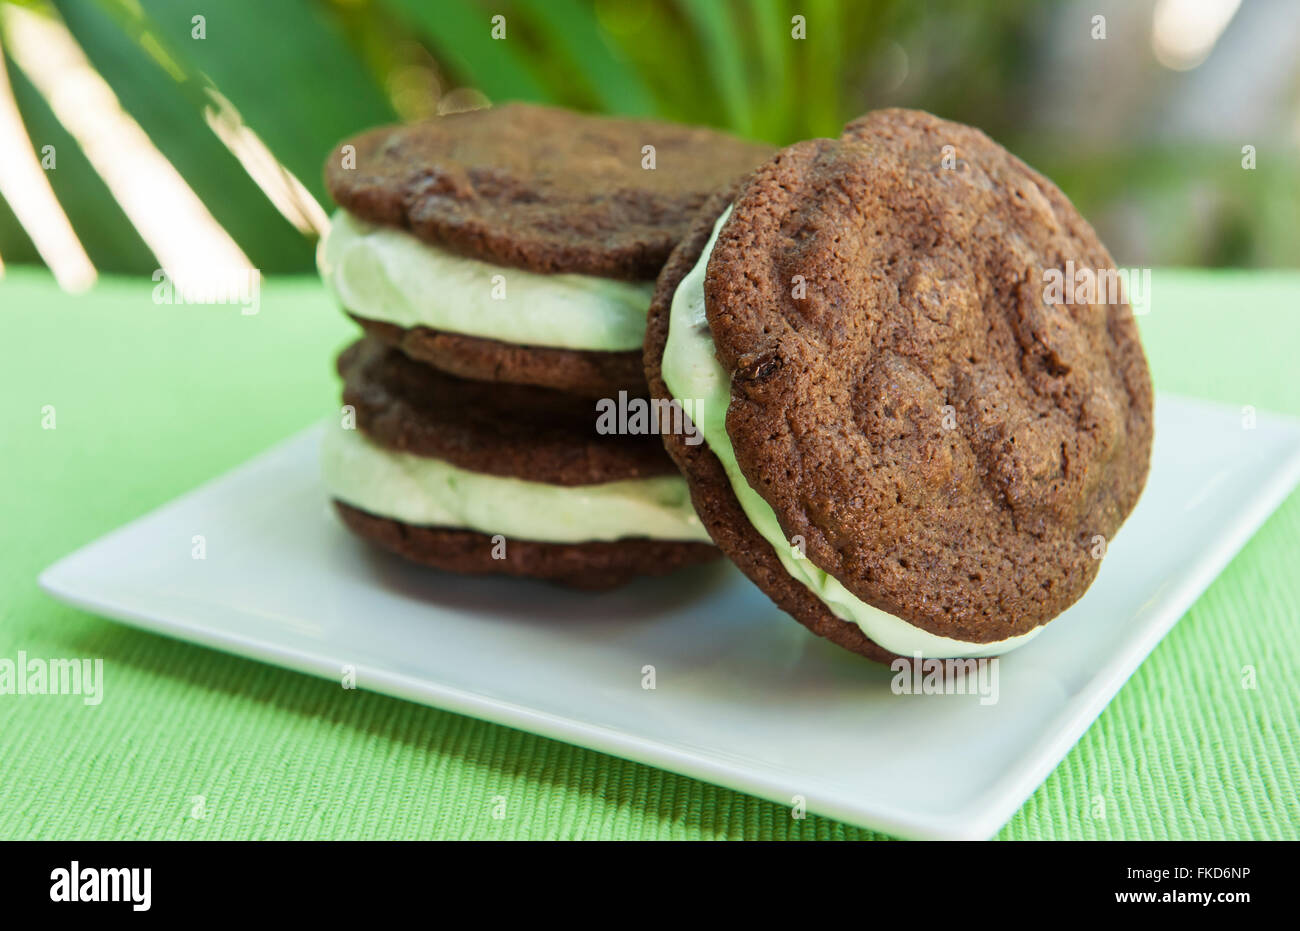 Ice cream Sandwich - double chocolate chip cookie with mint ice cream with tropical background - Stock Image